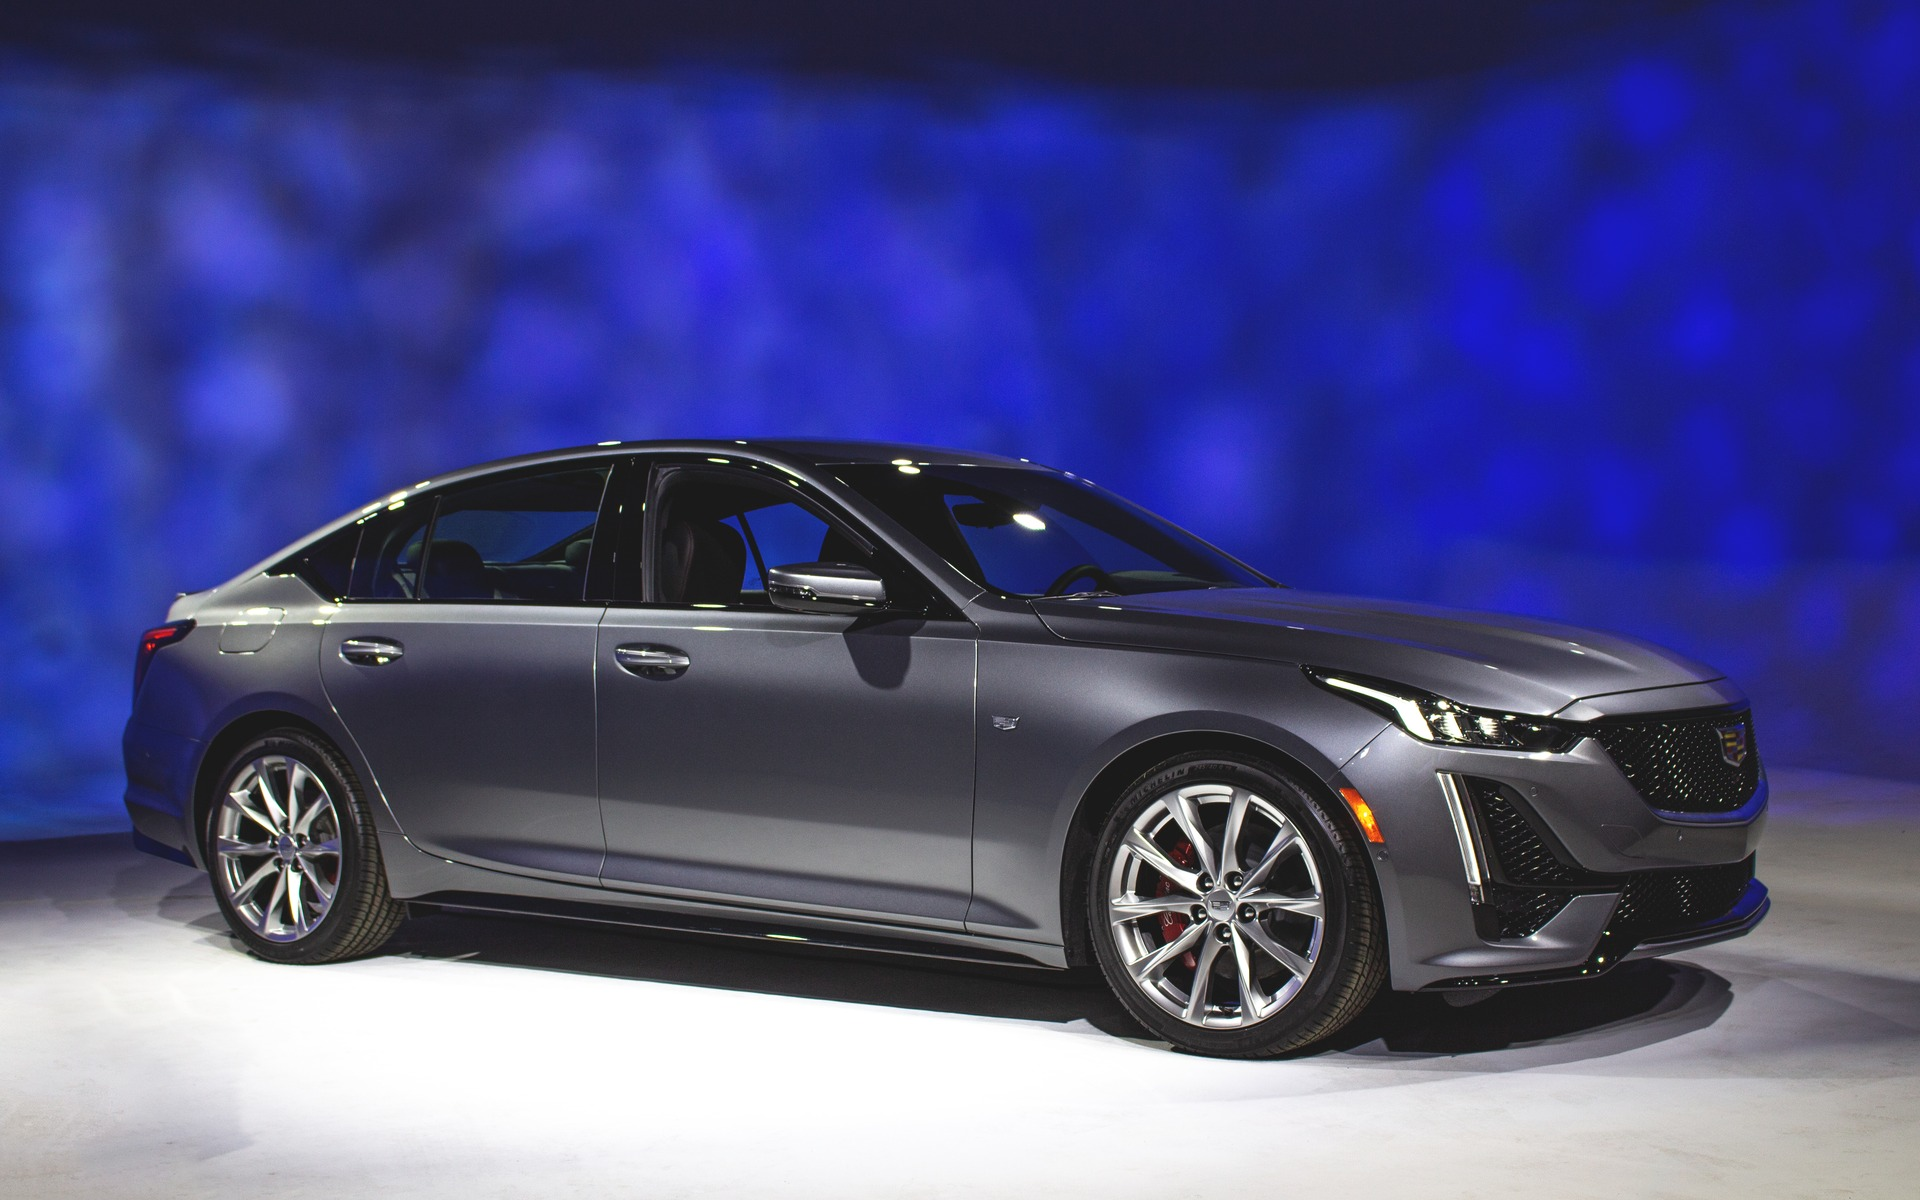 2020 Cadillac CT5: Everything You Need to Know - The Car Guide